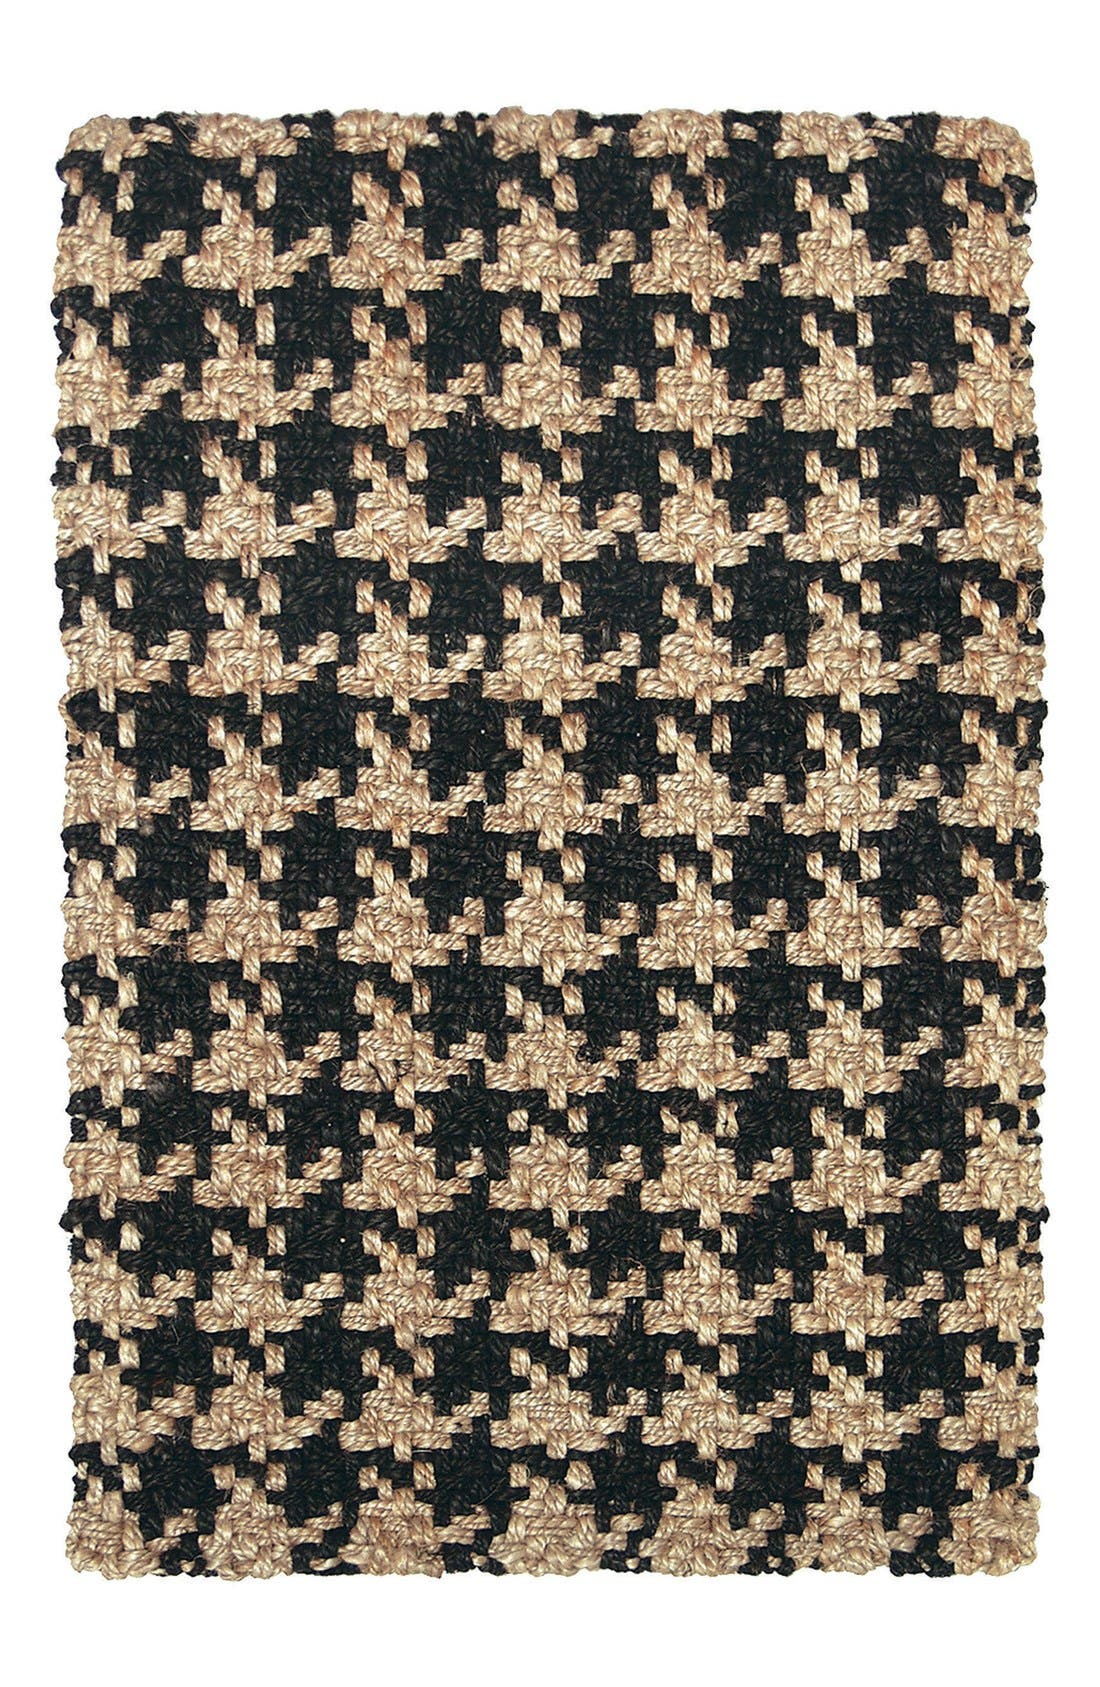 Houndstooth Rug,                             Main thumbnail 1, color,                             Black